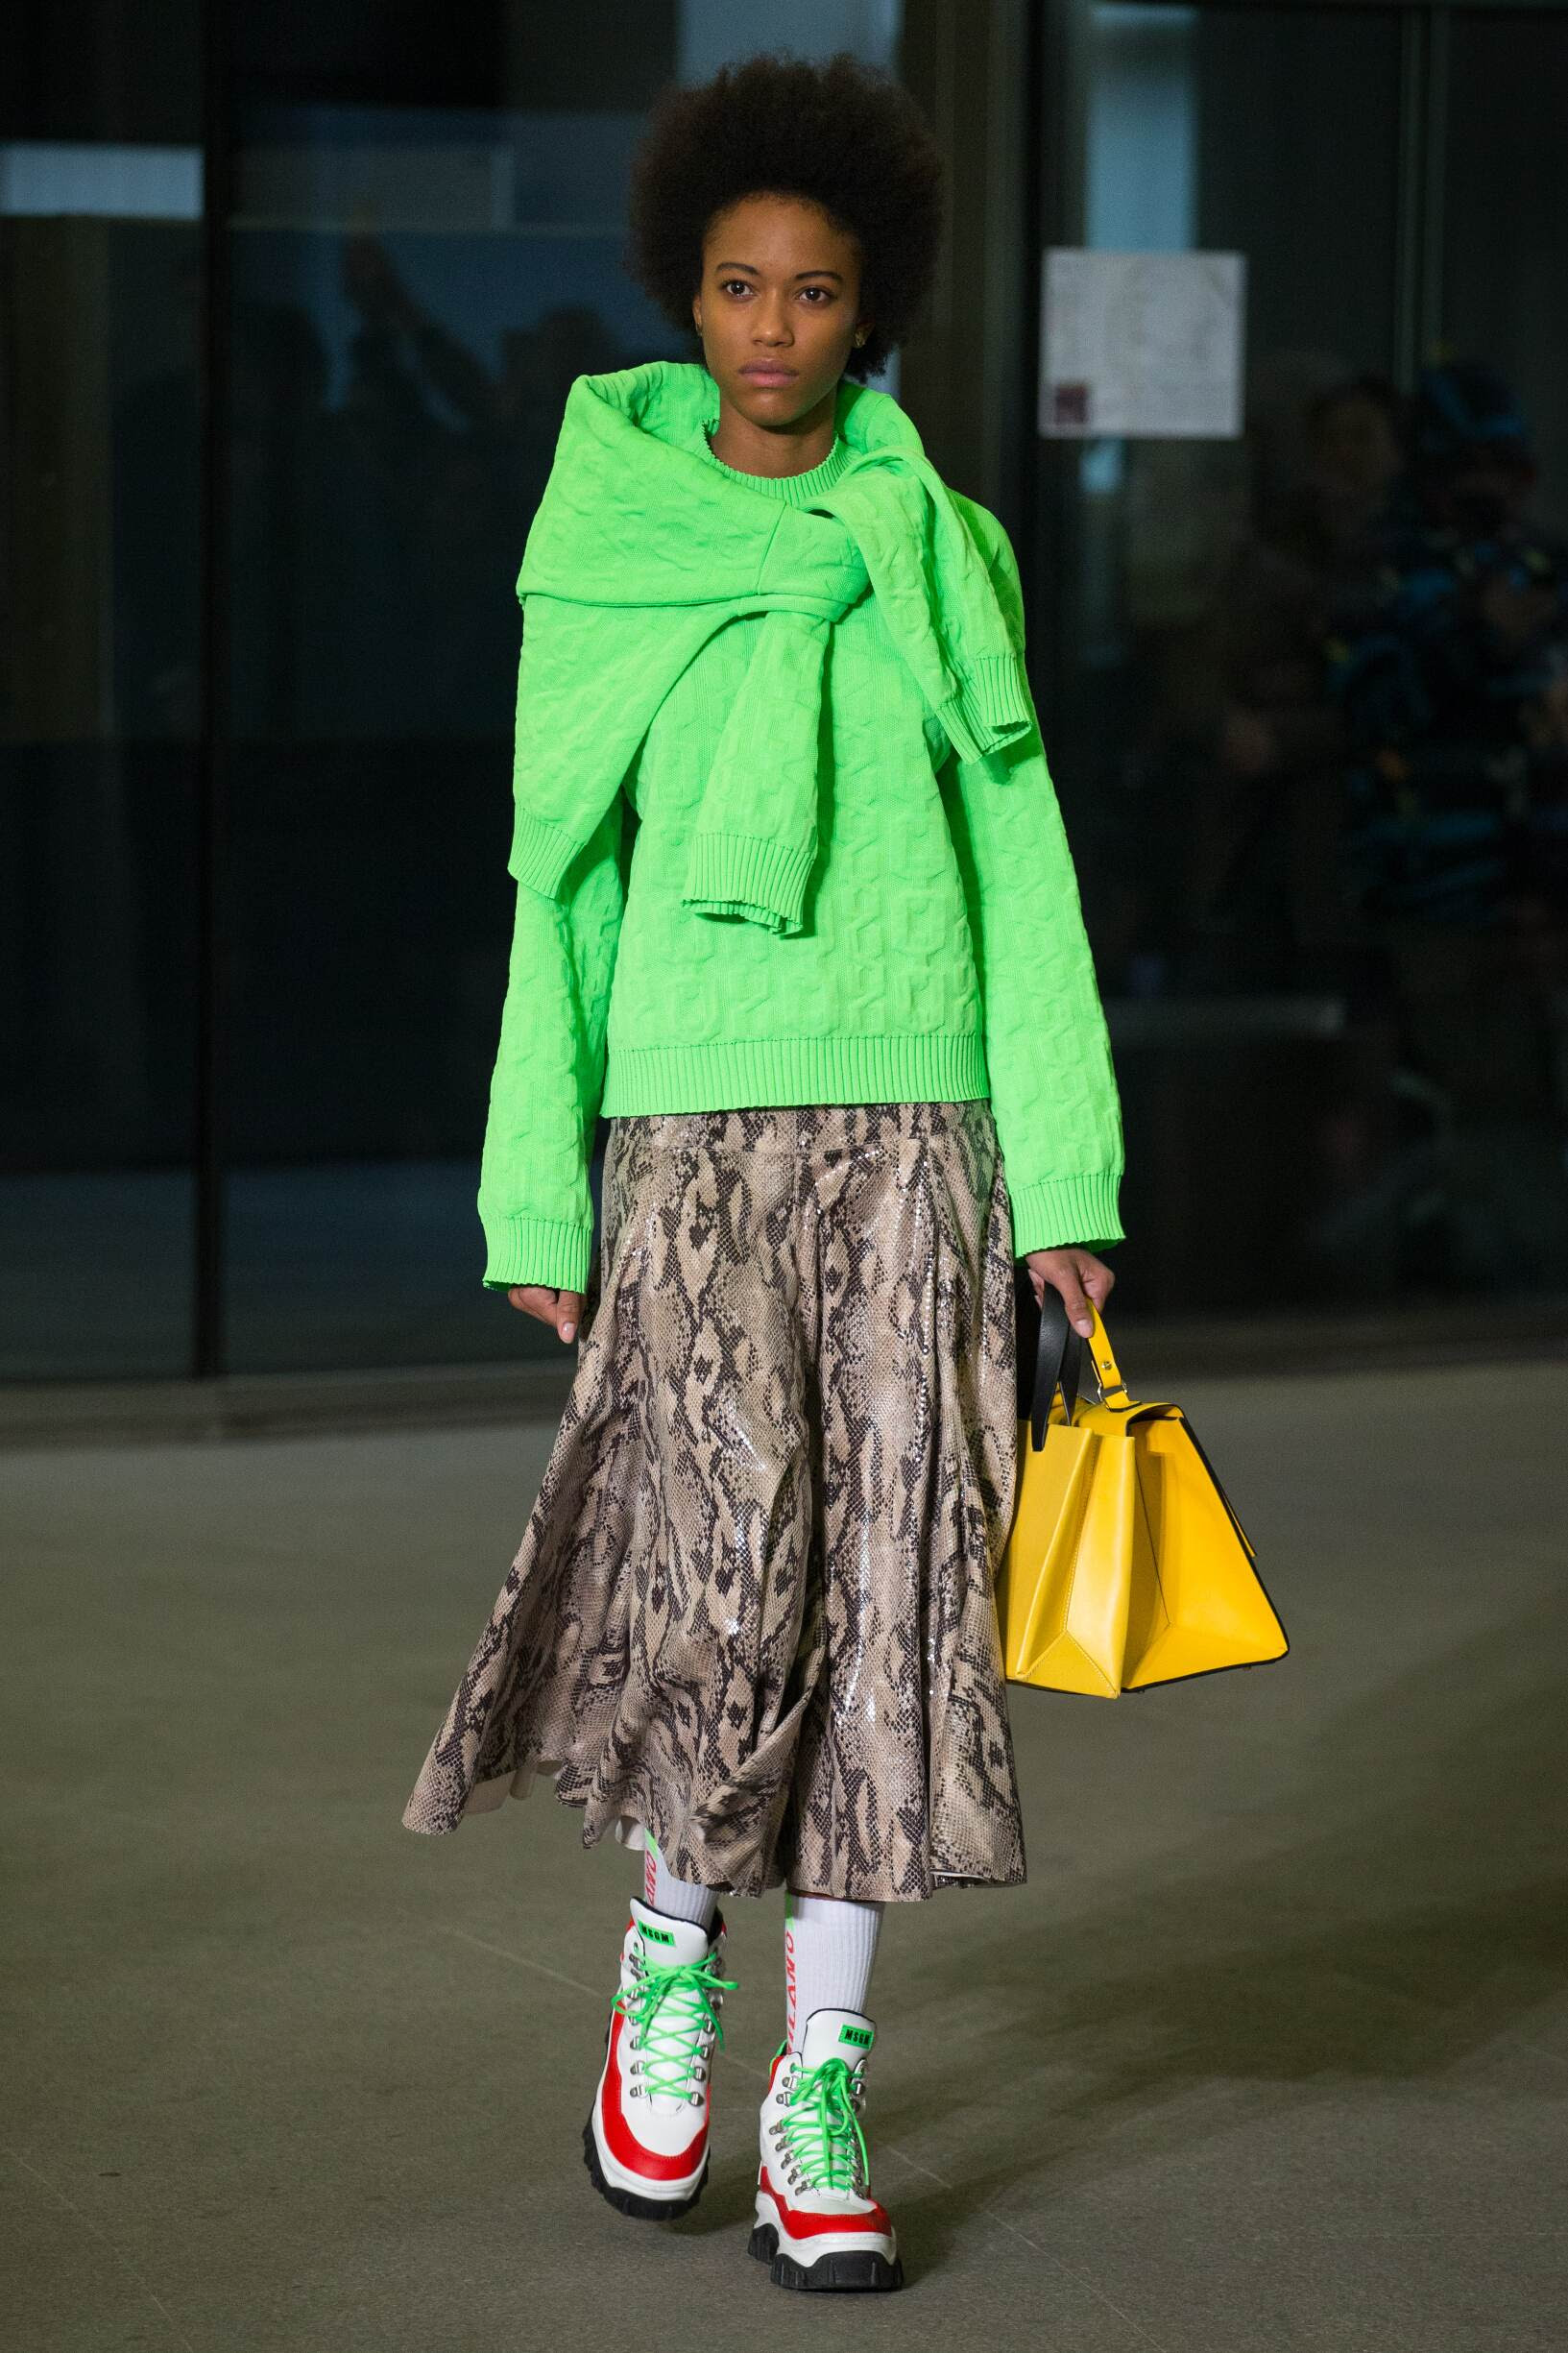 msgm fall winter 2018 women's collection  the skinny beep